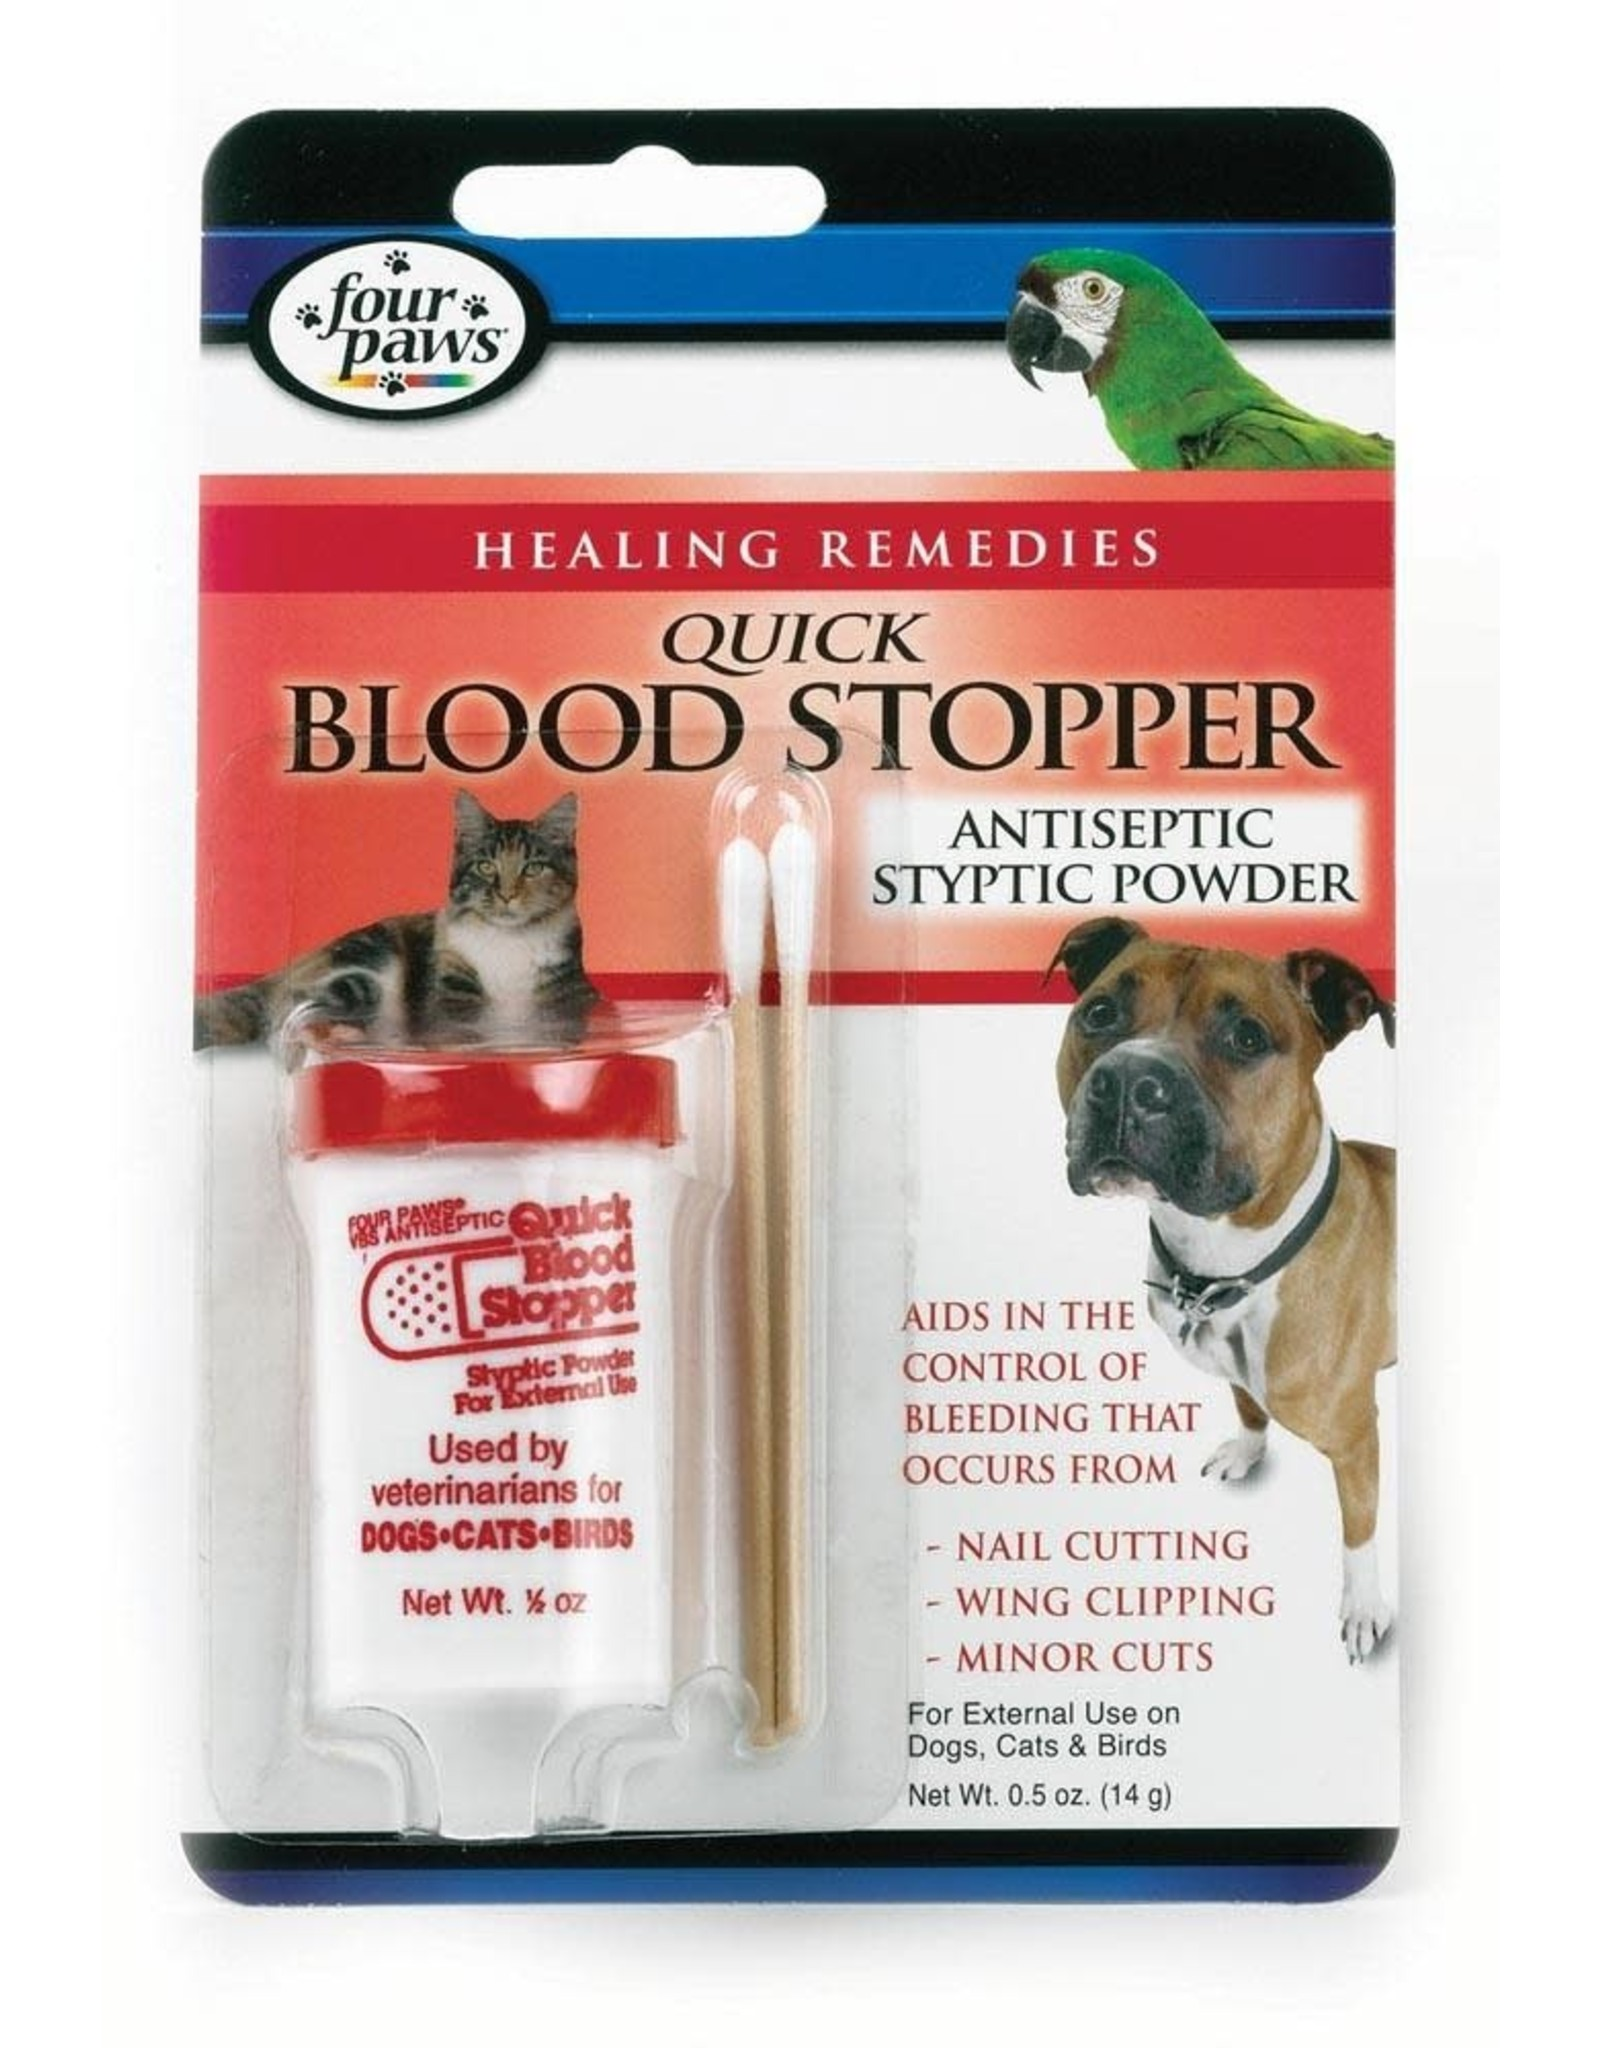 Antiseptic Quick Blood Stopper Powder